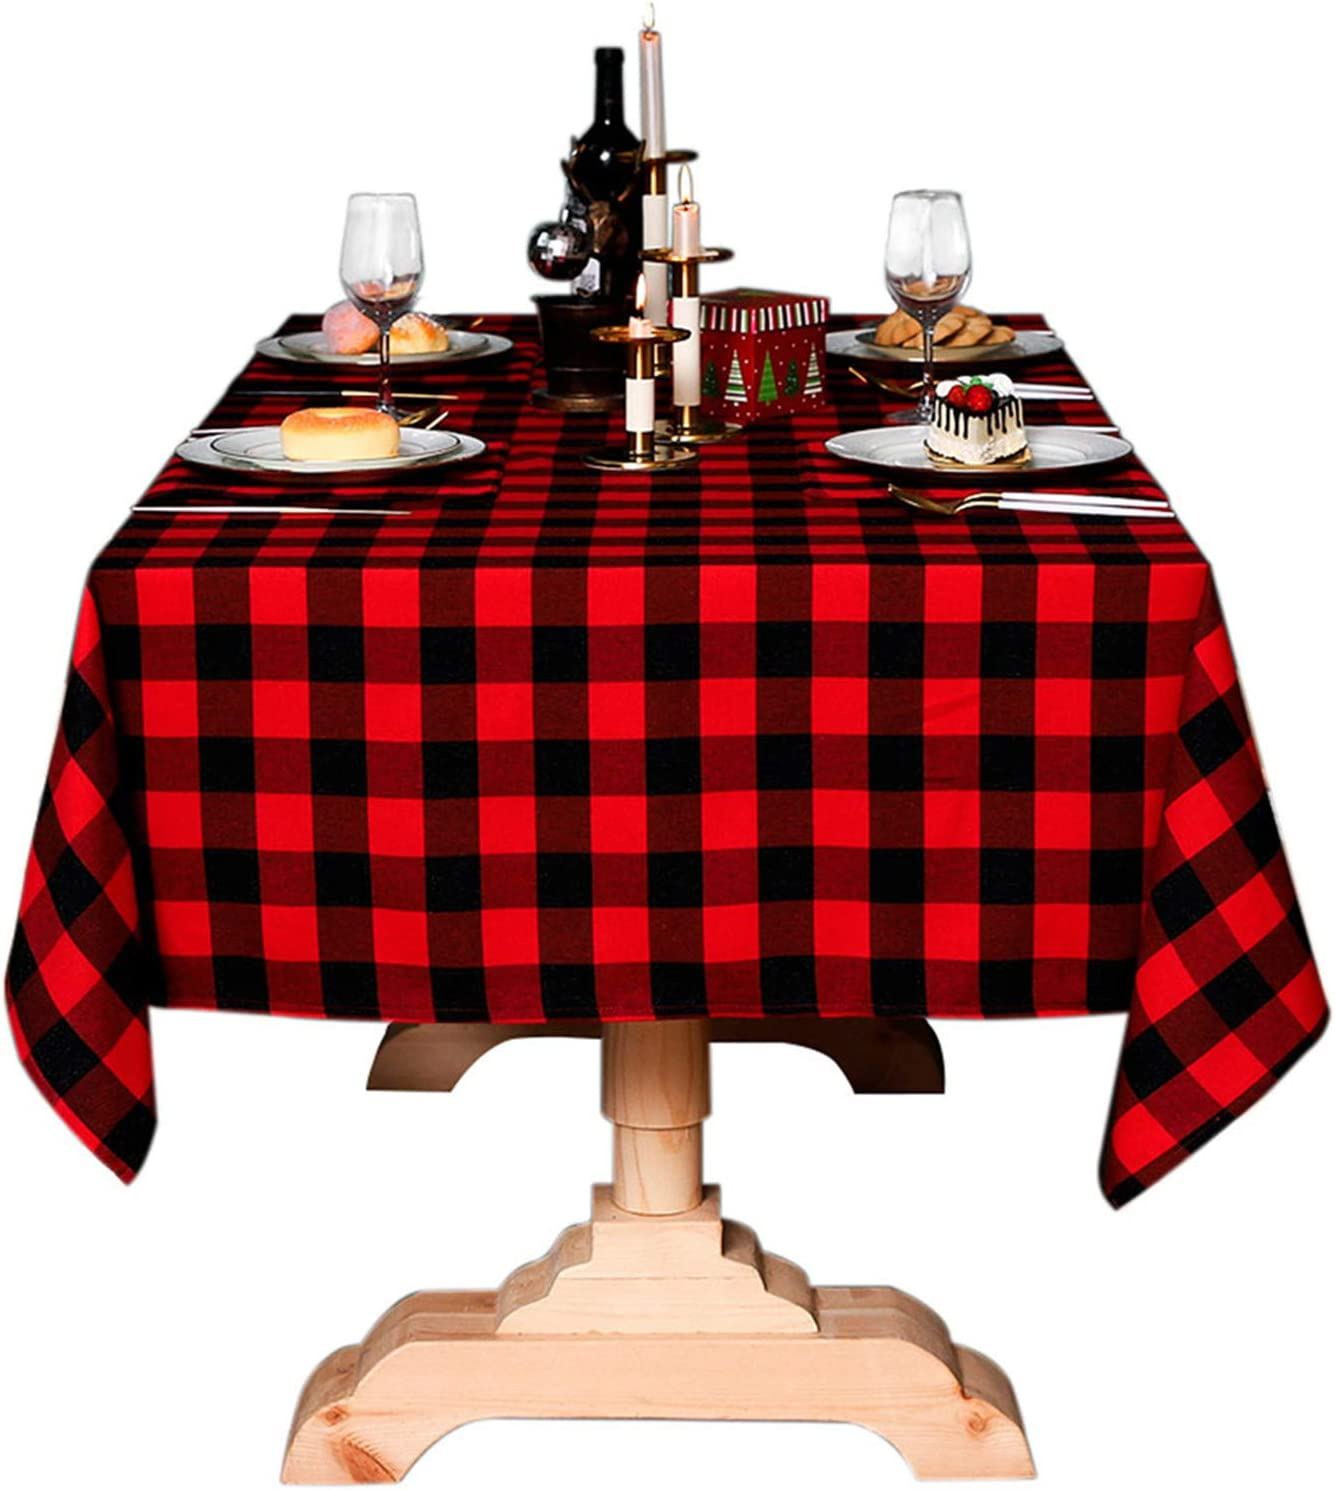 Buffalo Check Christmas Tablecloth Cotton Linen Plaid Table Cloth for Christmas Party Wedding Table Decoration ( 55 x 40 Inch, Red & Black )